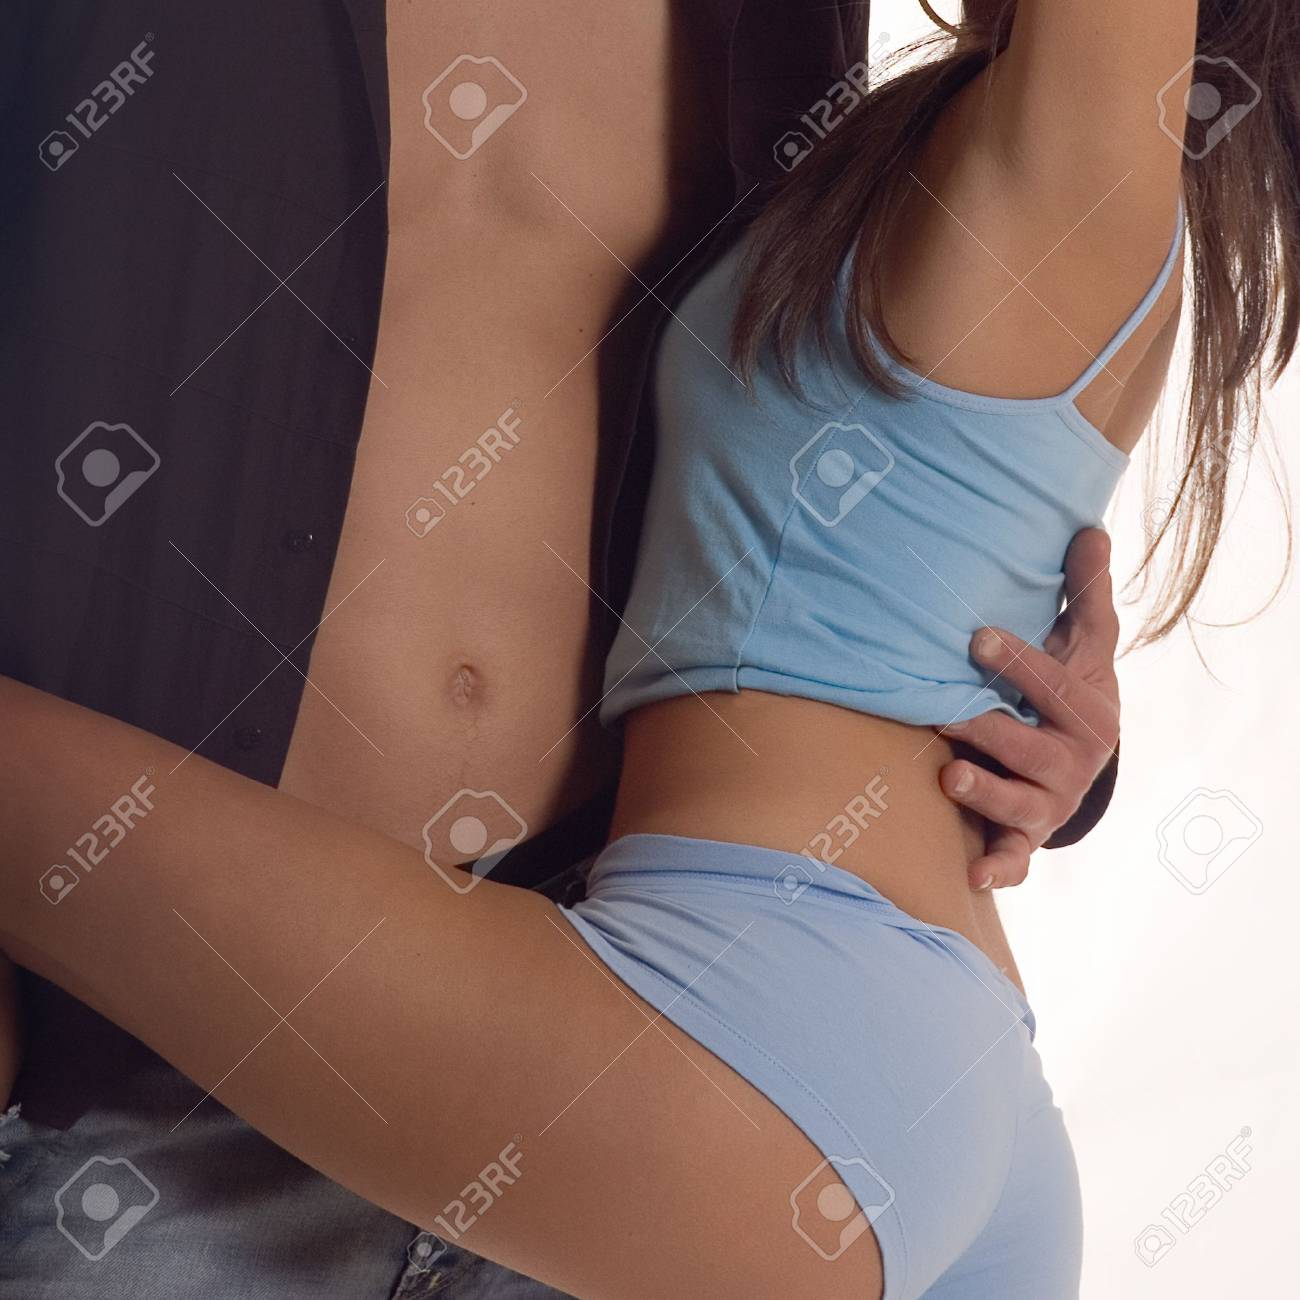 Passion moment between a man and woman Stock Photo - 981038